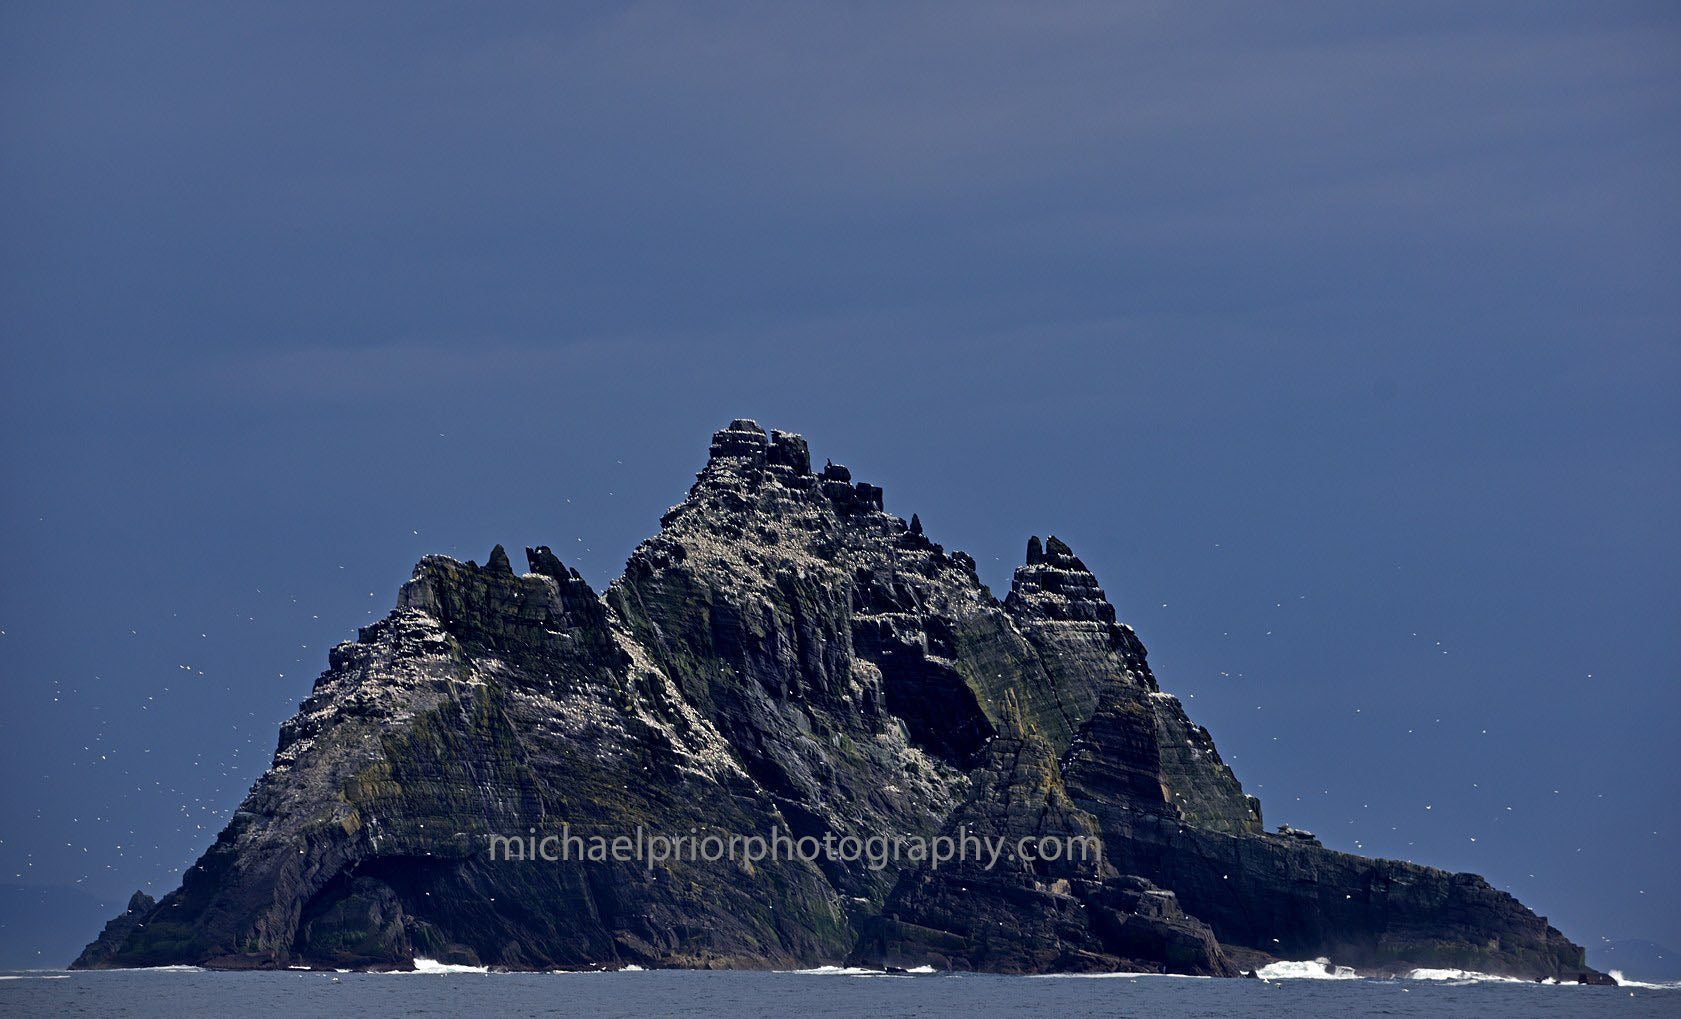 The Little Skellig - Michael Prior Photography